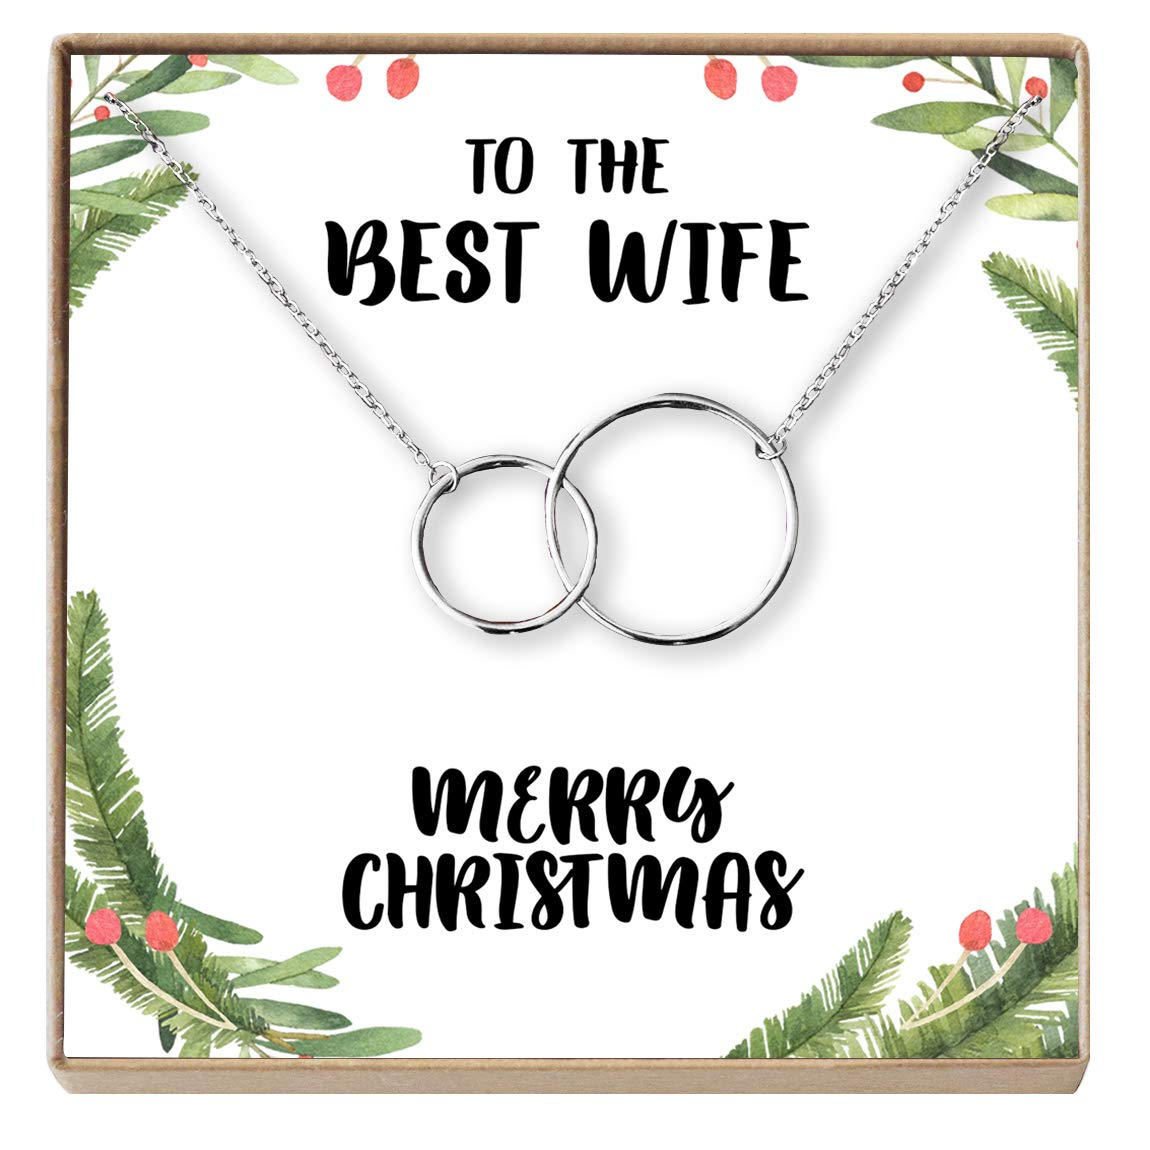 Necklace Dear Ava for Wife: Present Xmas for Wife 2 Interlocking Circles Jewelry